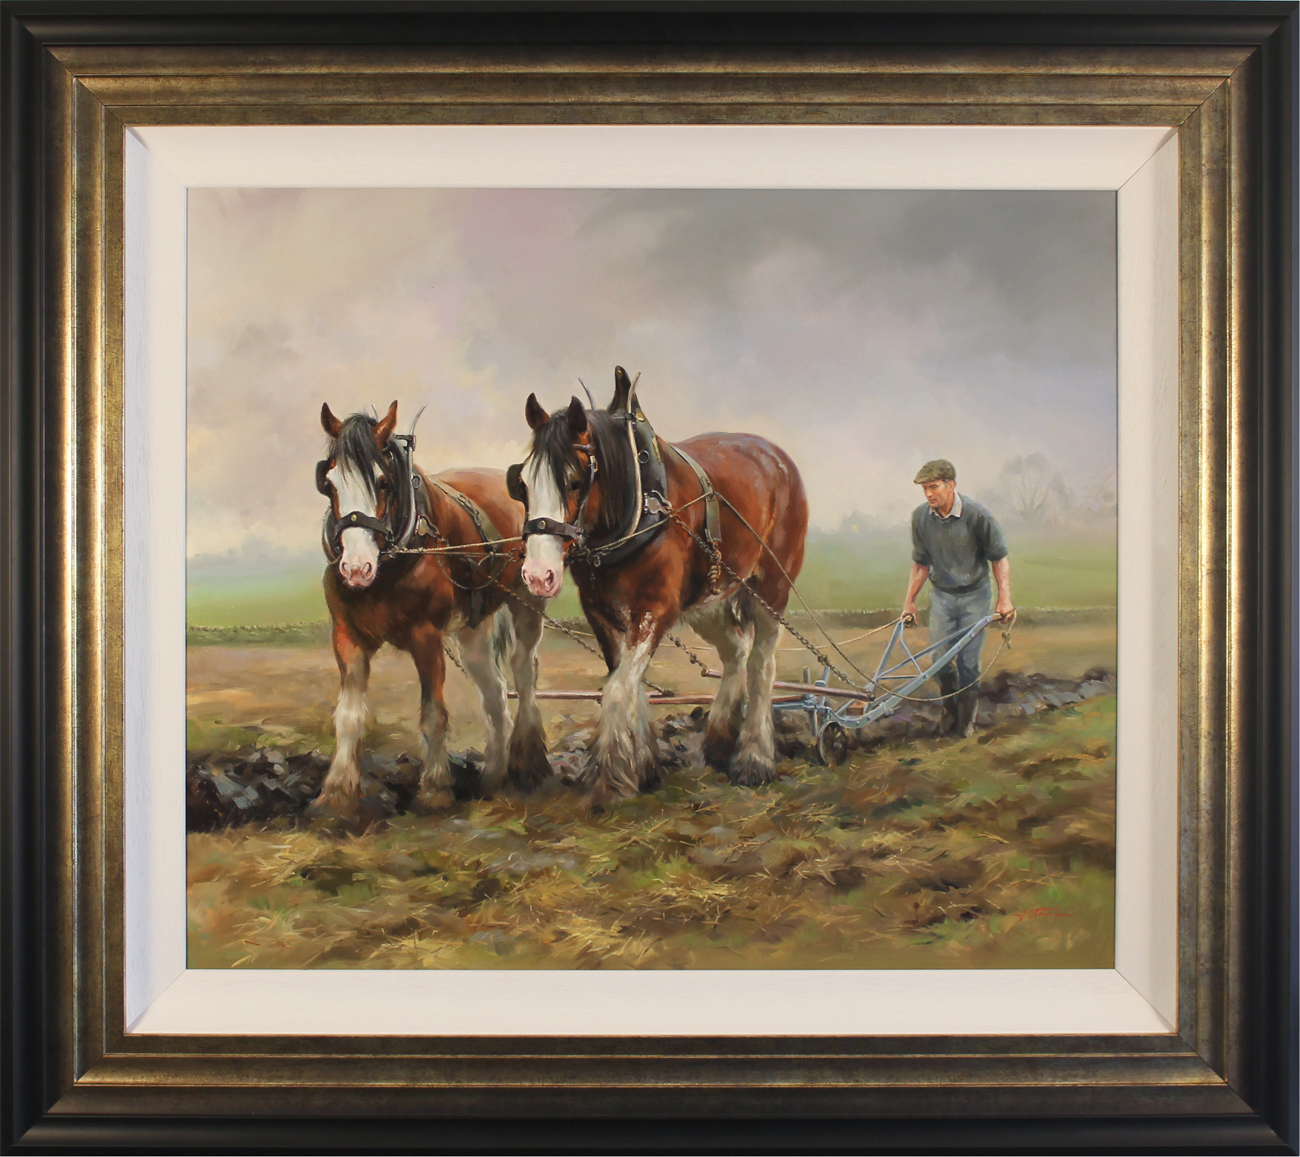 Jacqueline Stanhope, Original oil painting on canvas, Autumn Ploughing, North Yorkshire, click to enlarge